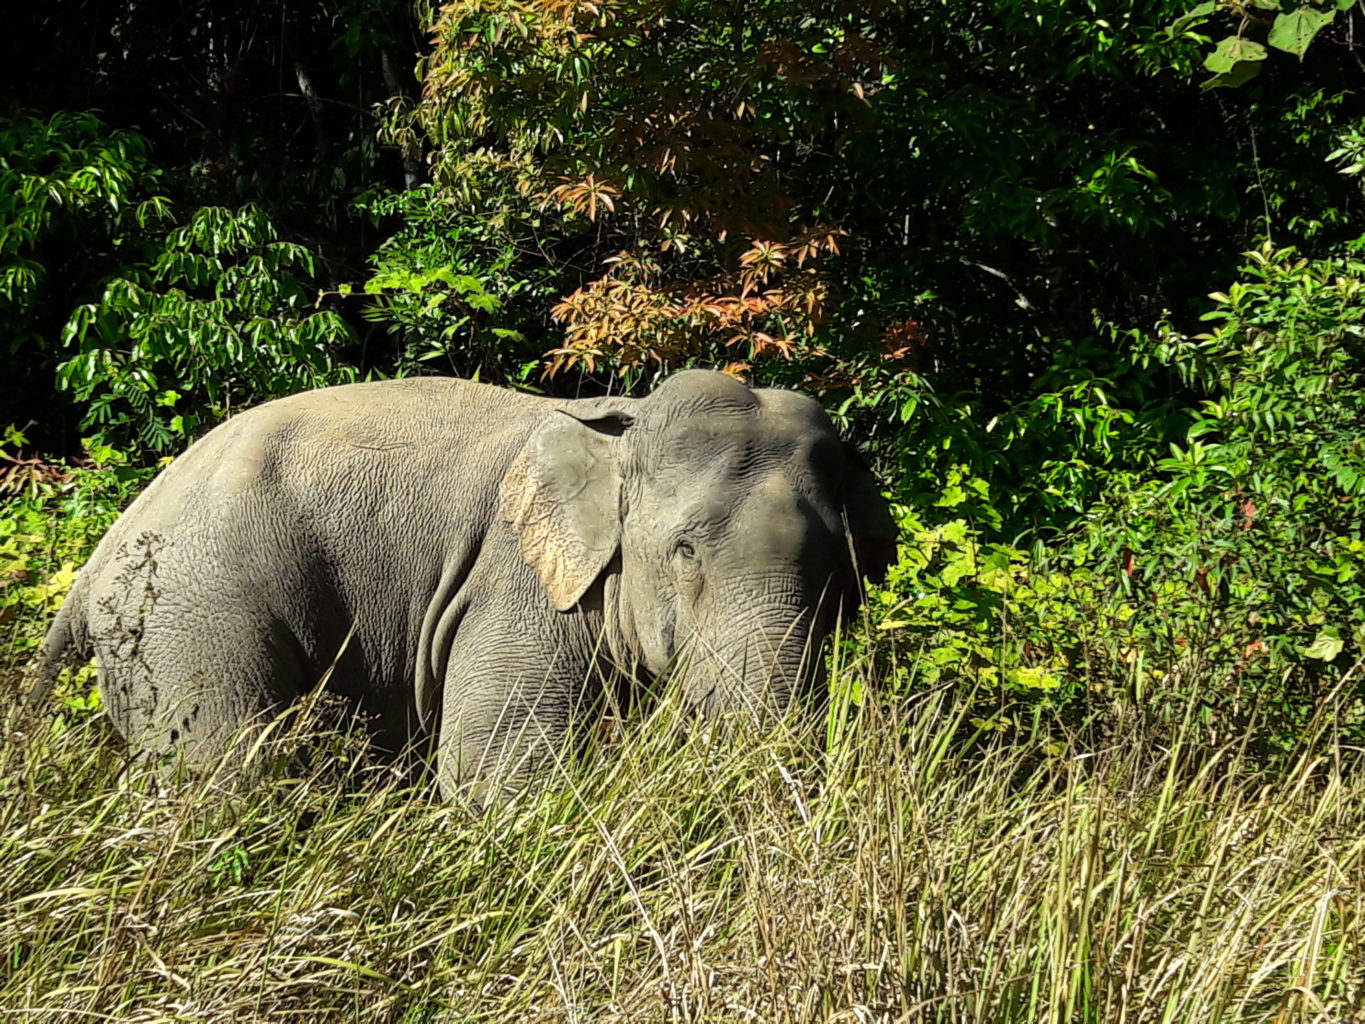 Elephant Quest at Khao Yai